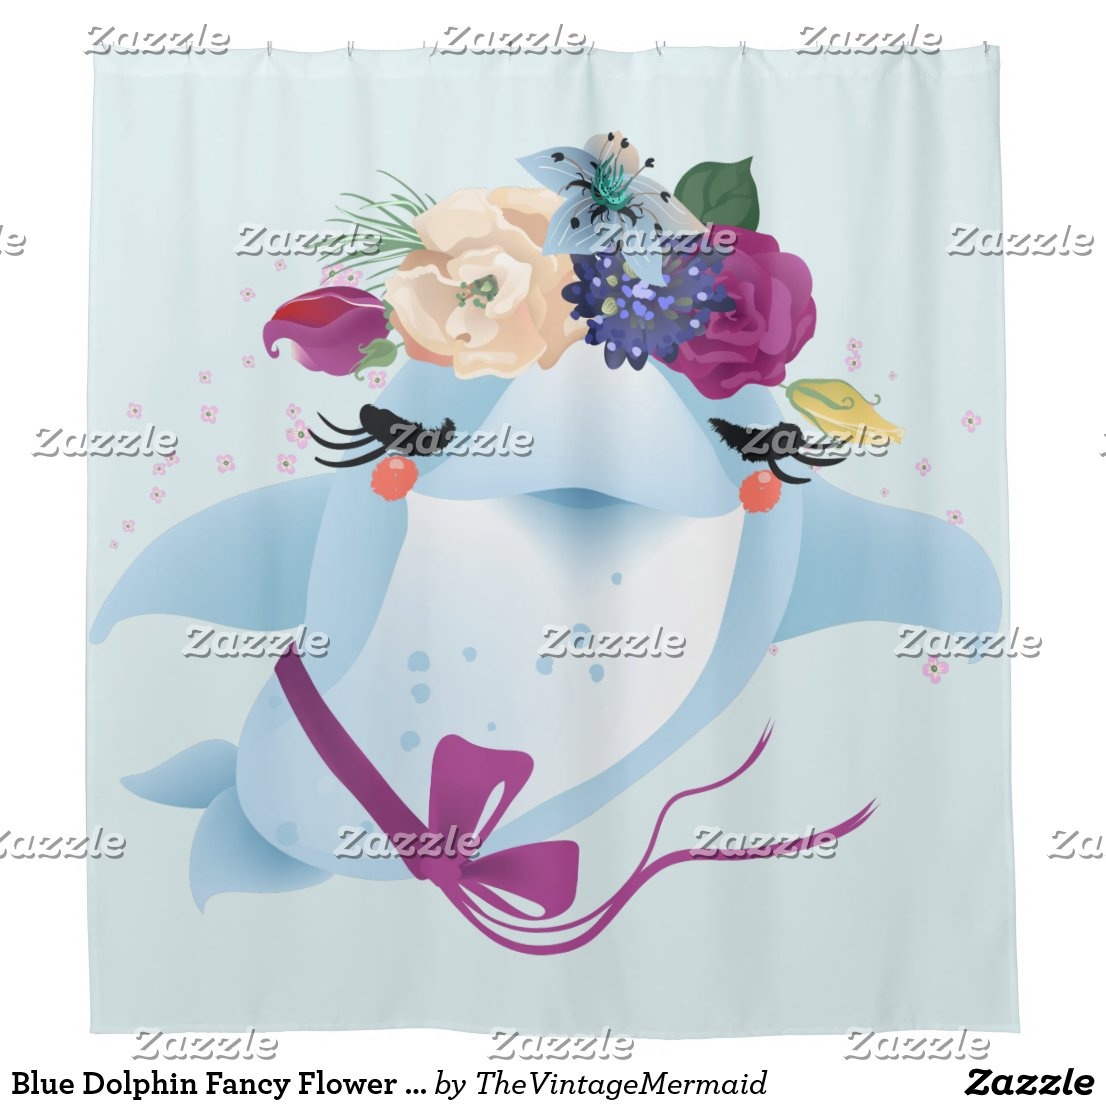 Blue Dolphin Fancy Flower Headpiece Shower Curtain